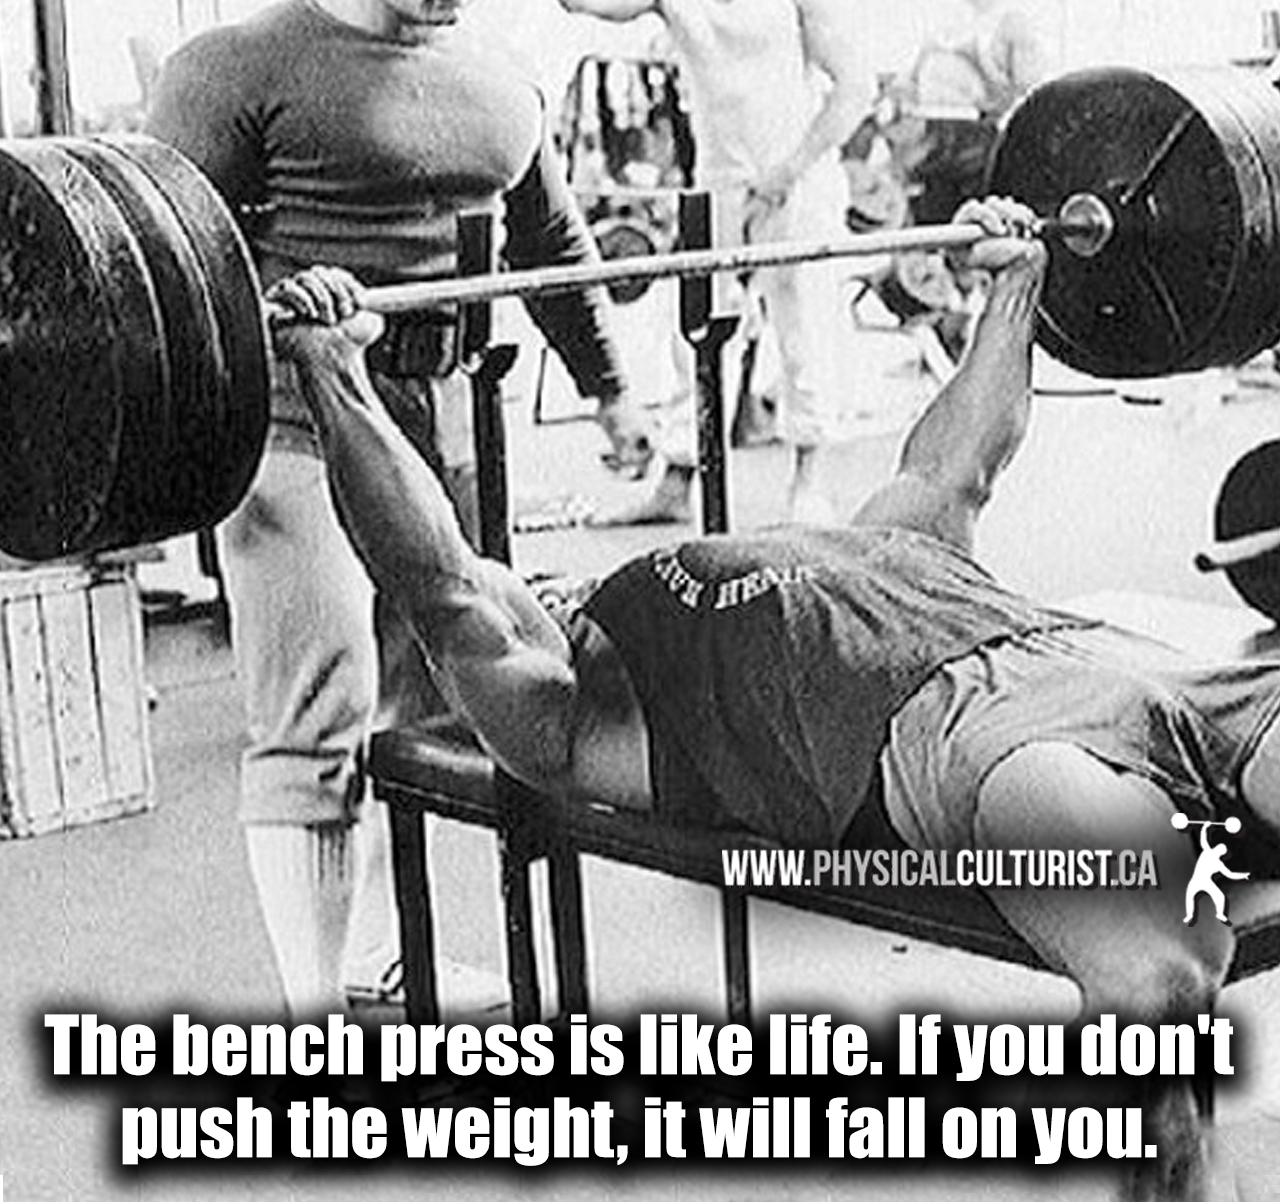 the bench press is like life. if you don't push the weight, it will fall on you